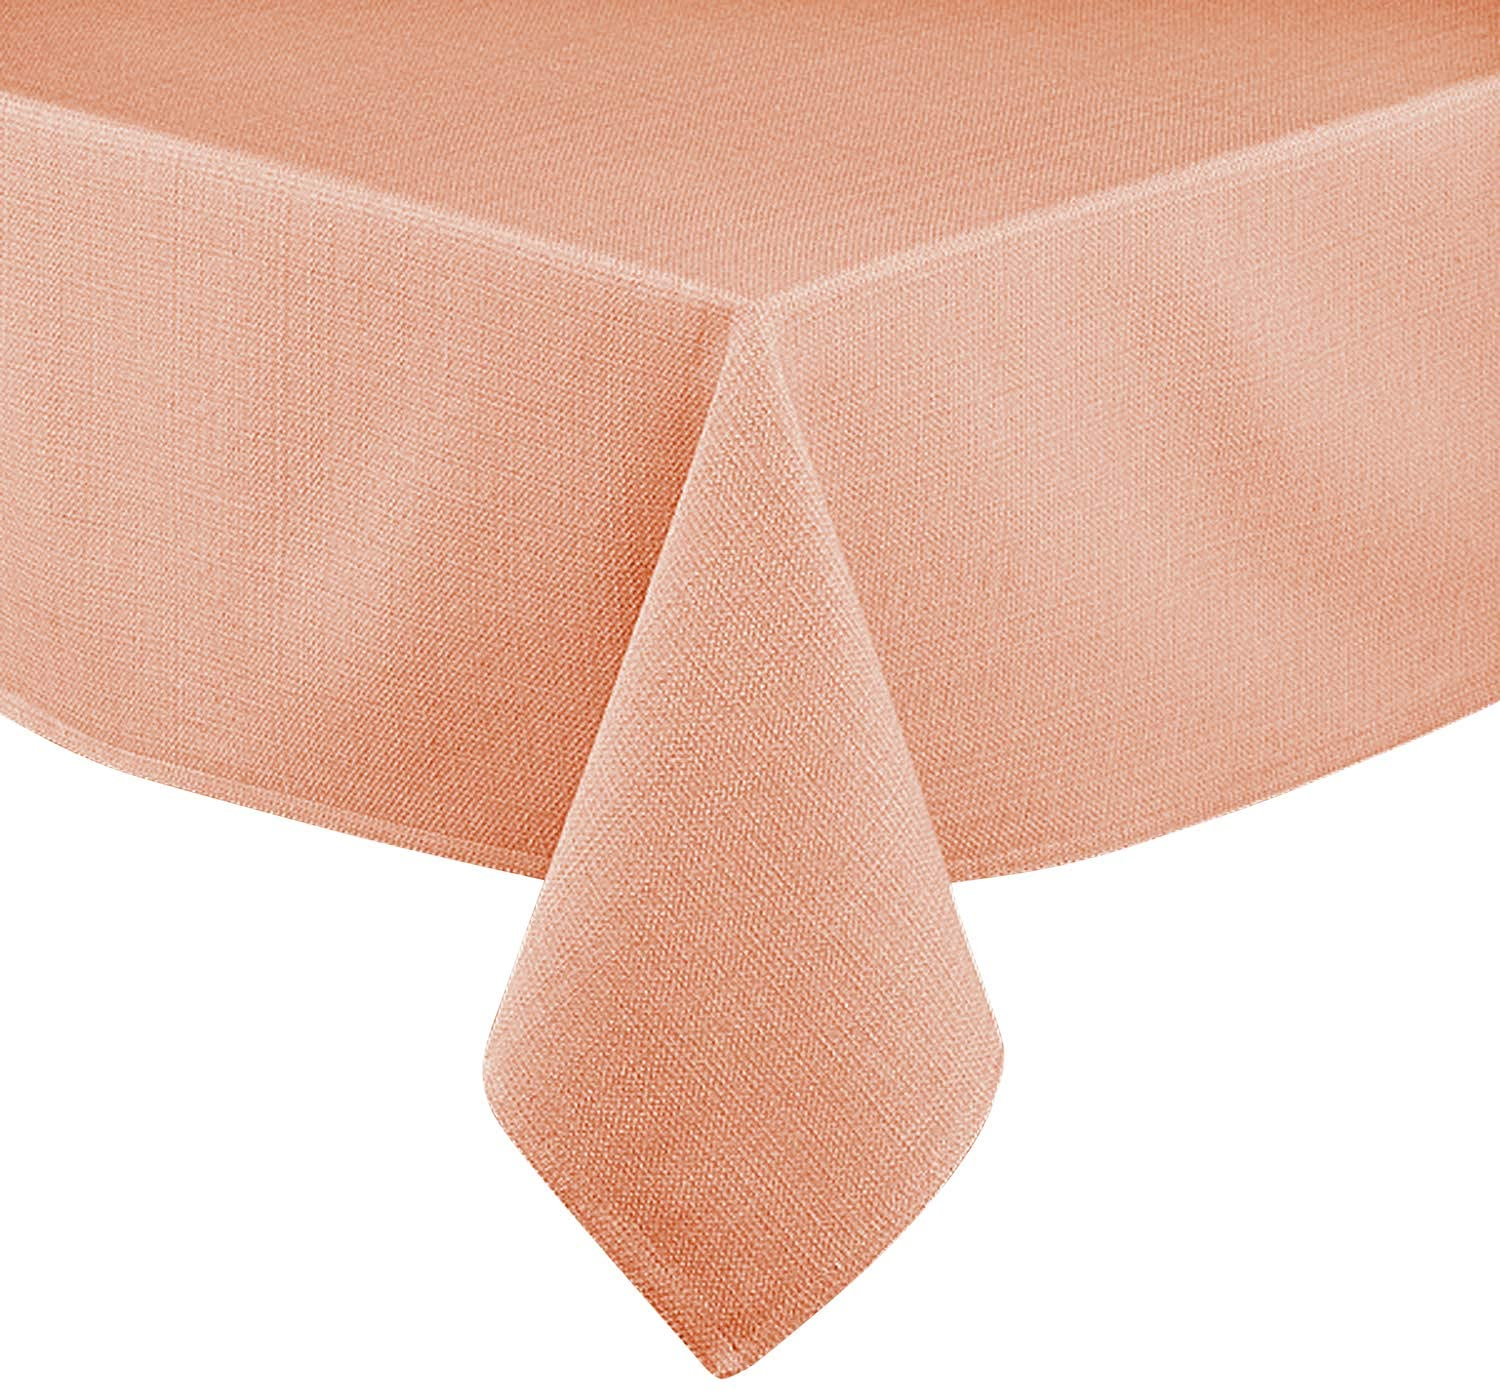 Lintex Linens Rio Cotton Polyester Indoor Outdoor Table Linens, Napkins 18-Inch by 18-Inch Set of 4, Coral